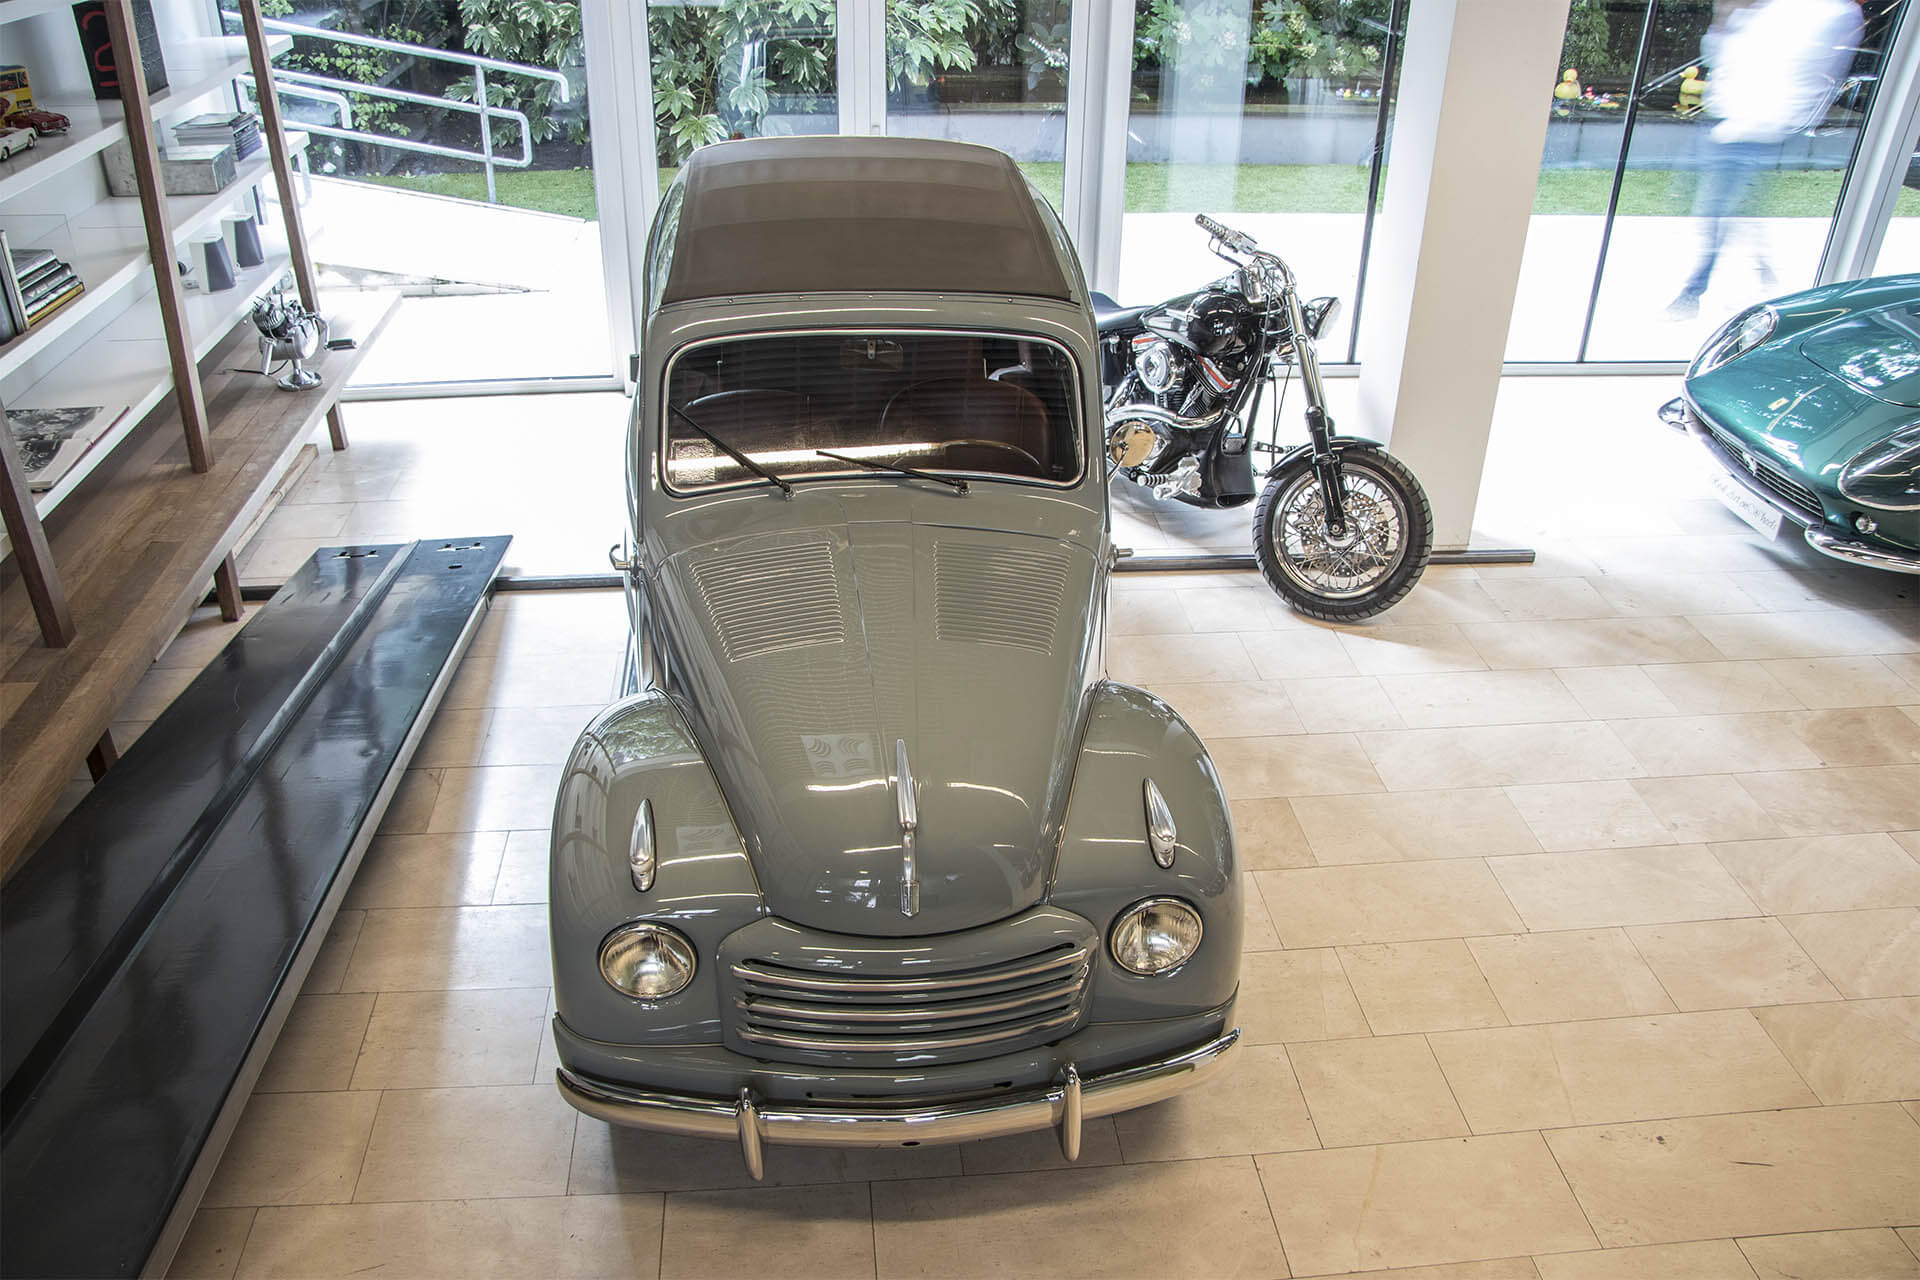 Real Art On Wheels | 1952 Fiat 500 Topolino Belvedere